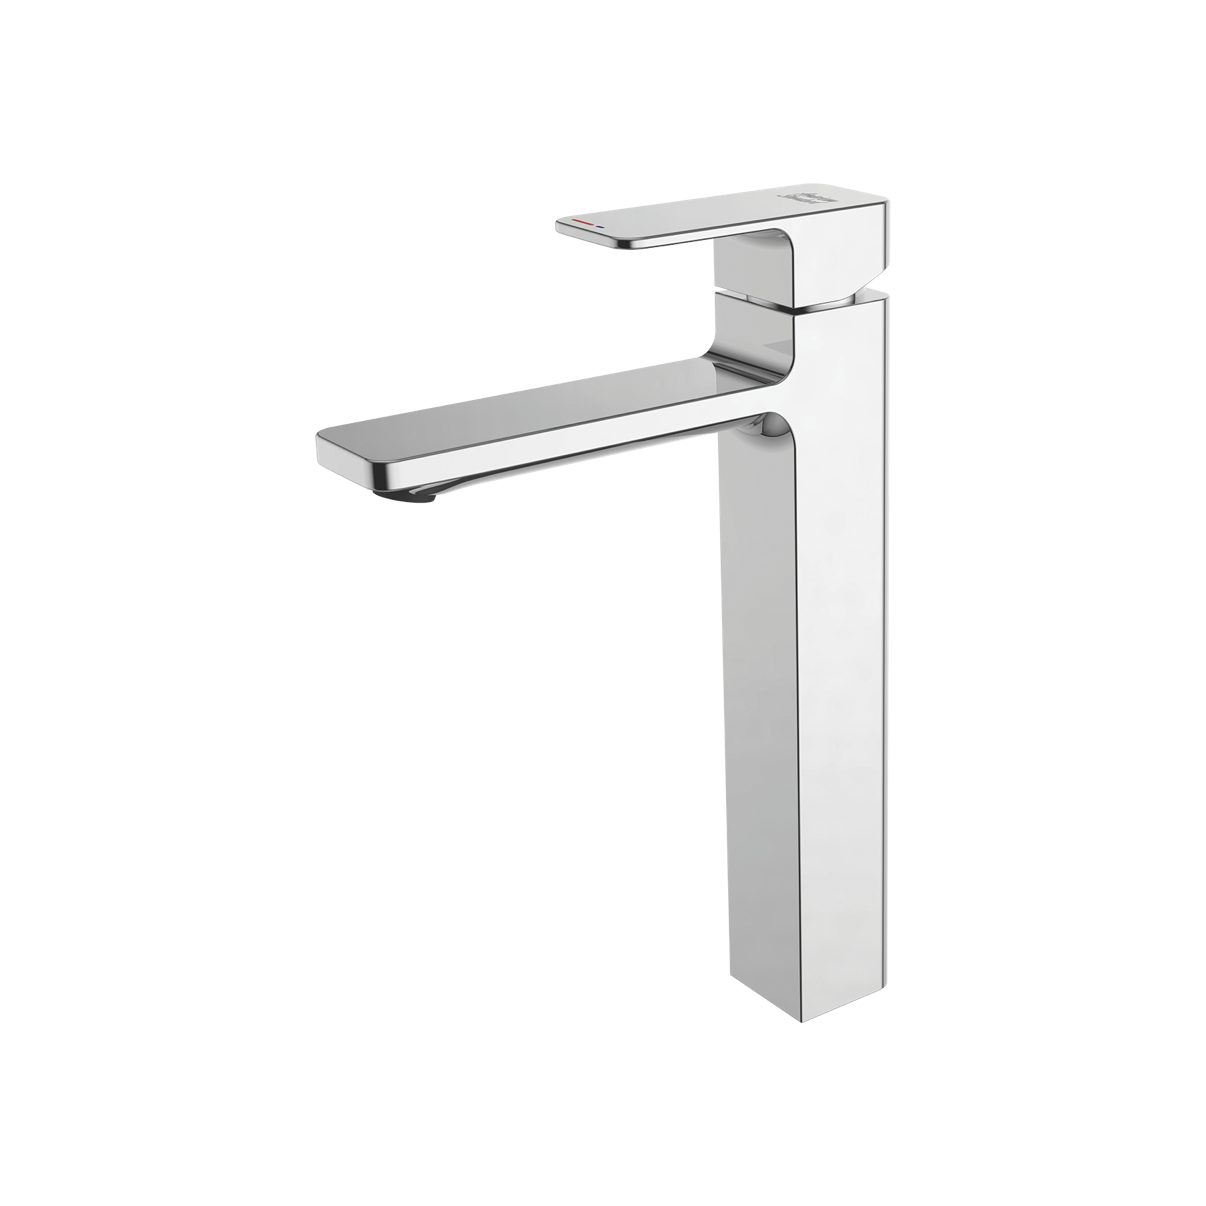 fittings-extended-basin-mixer.png